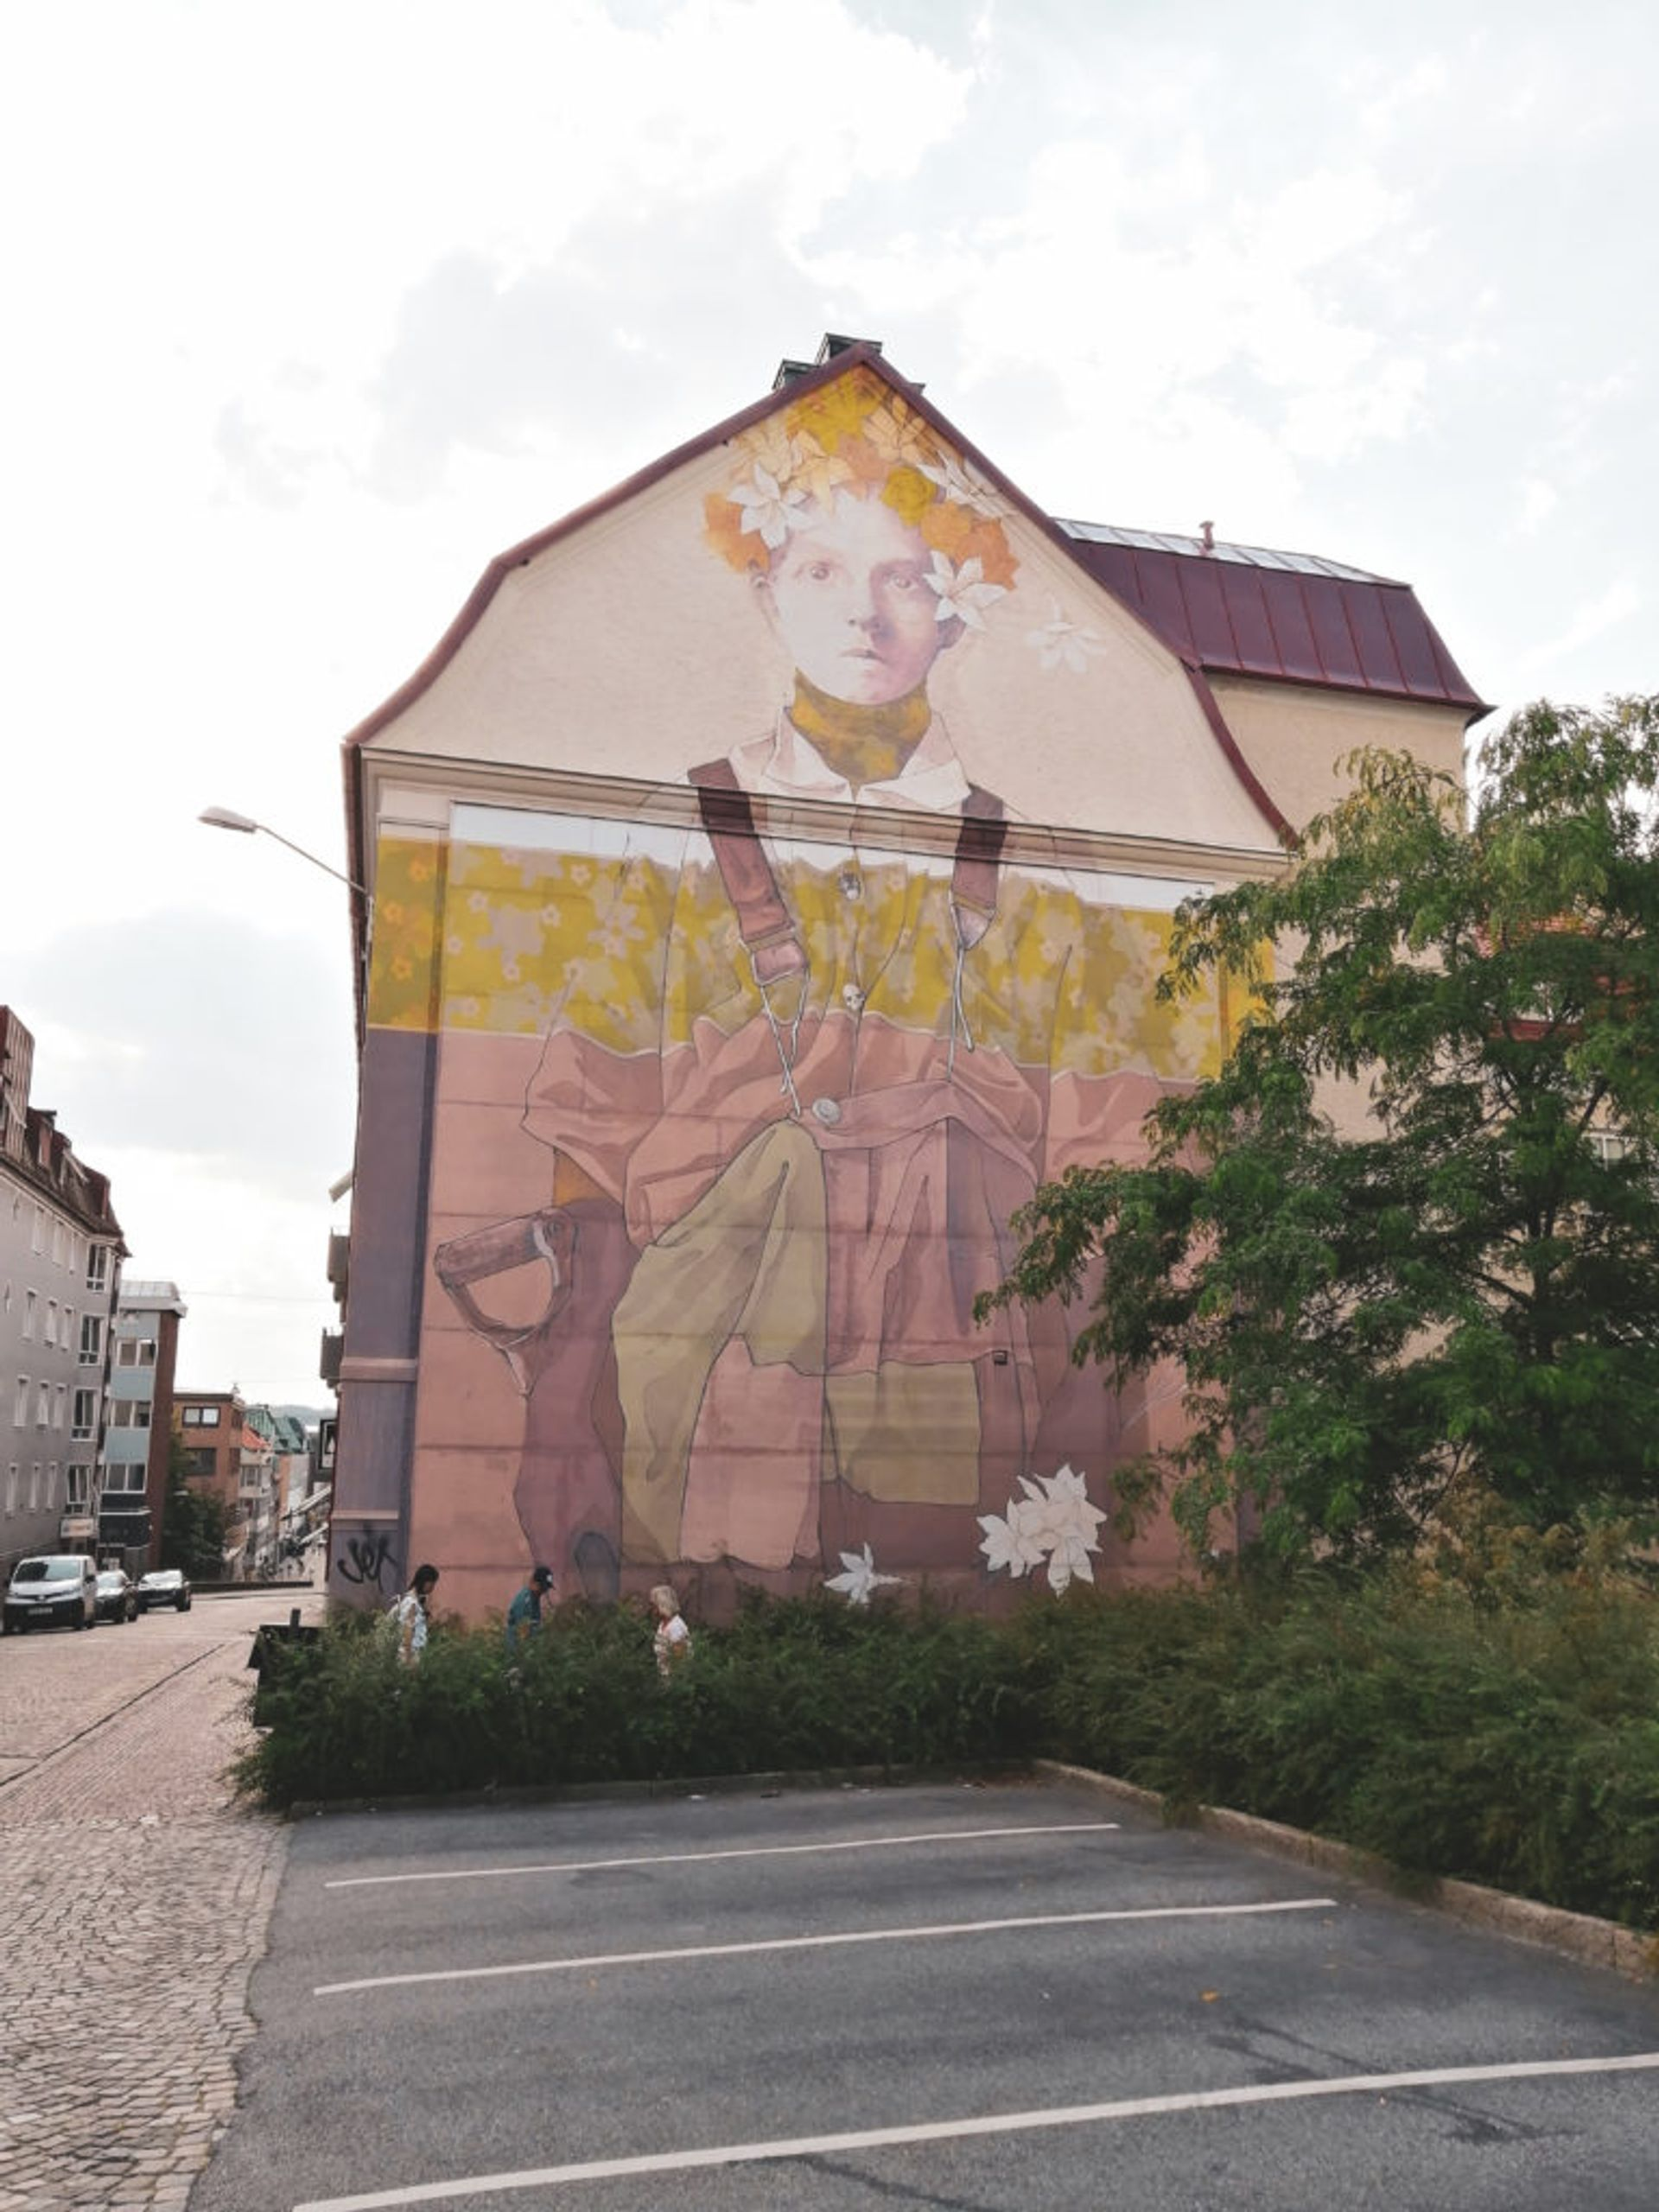 Washed out mural of person wearing dungarees and flower crown on the side of a residential building.